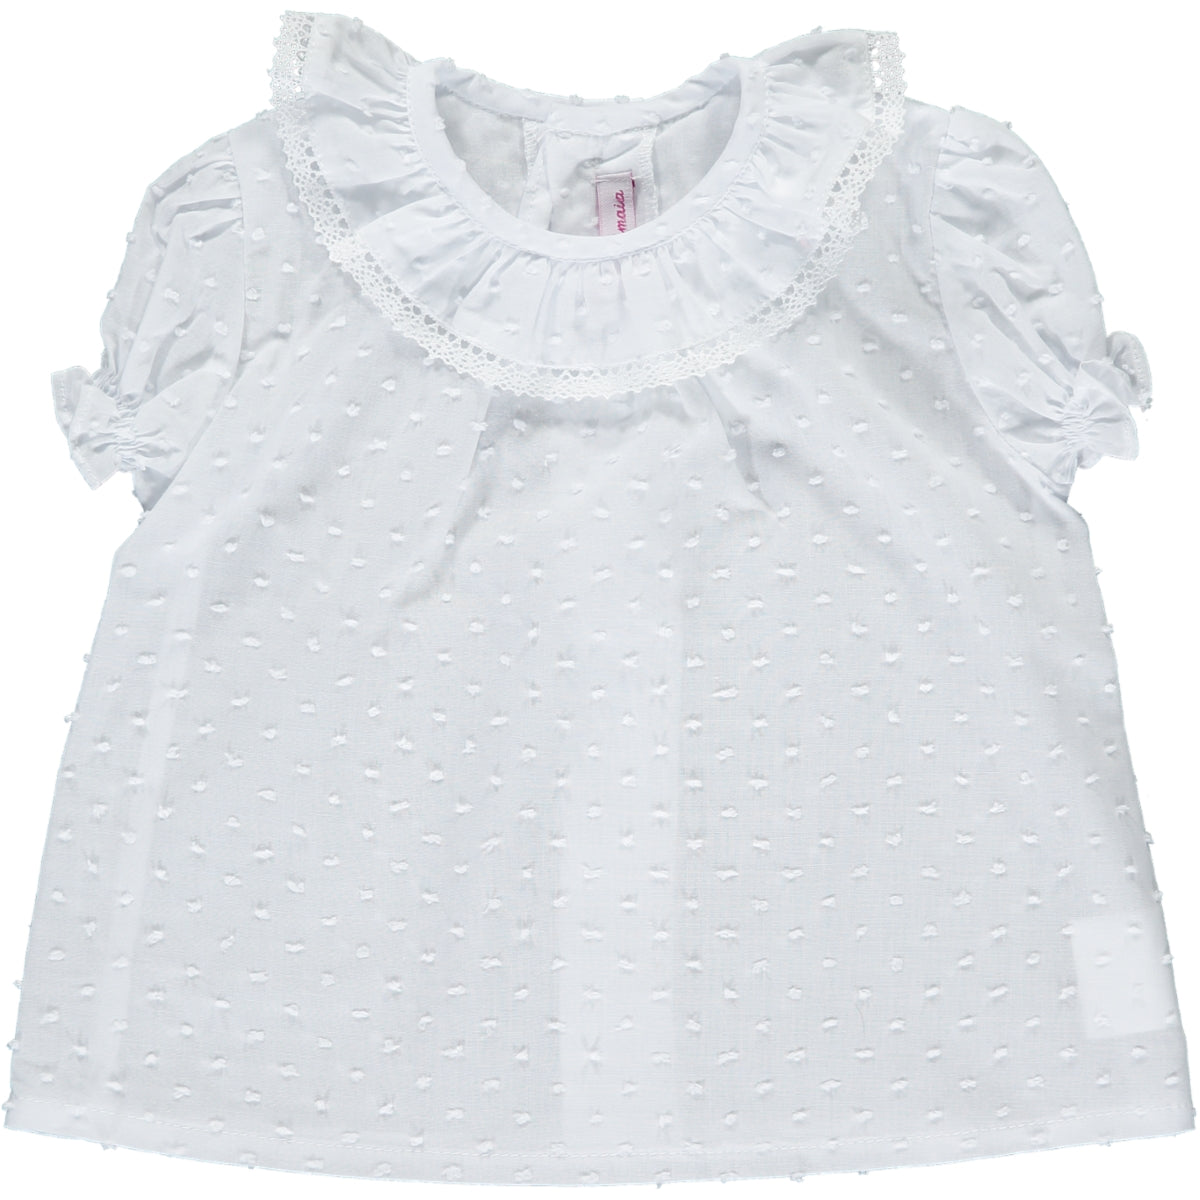 Kensington Top White Plumeti